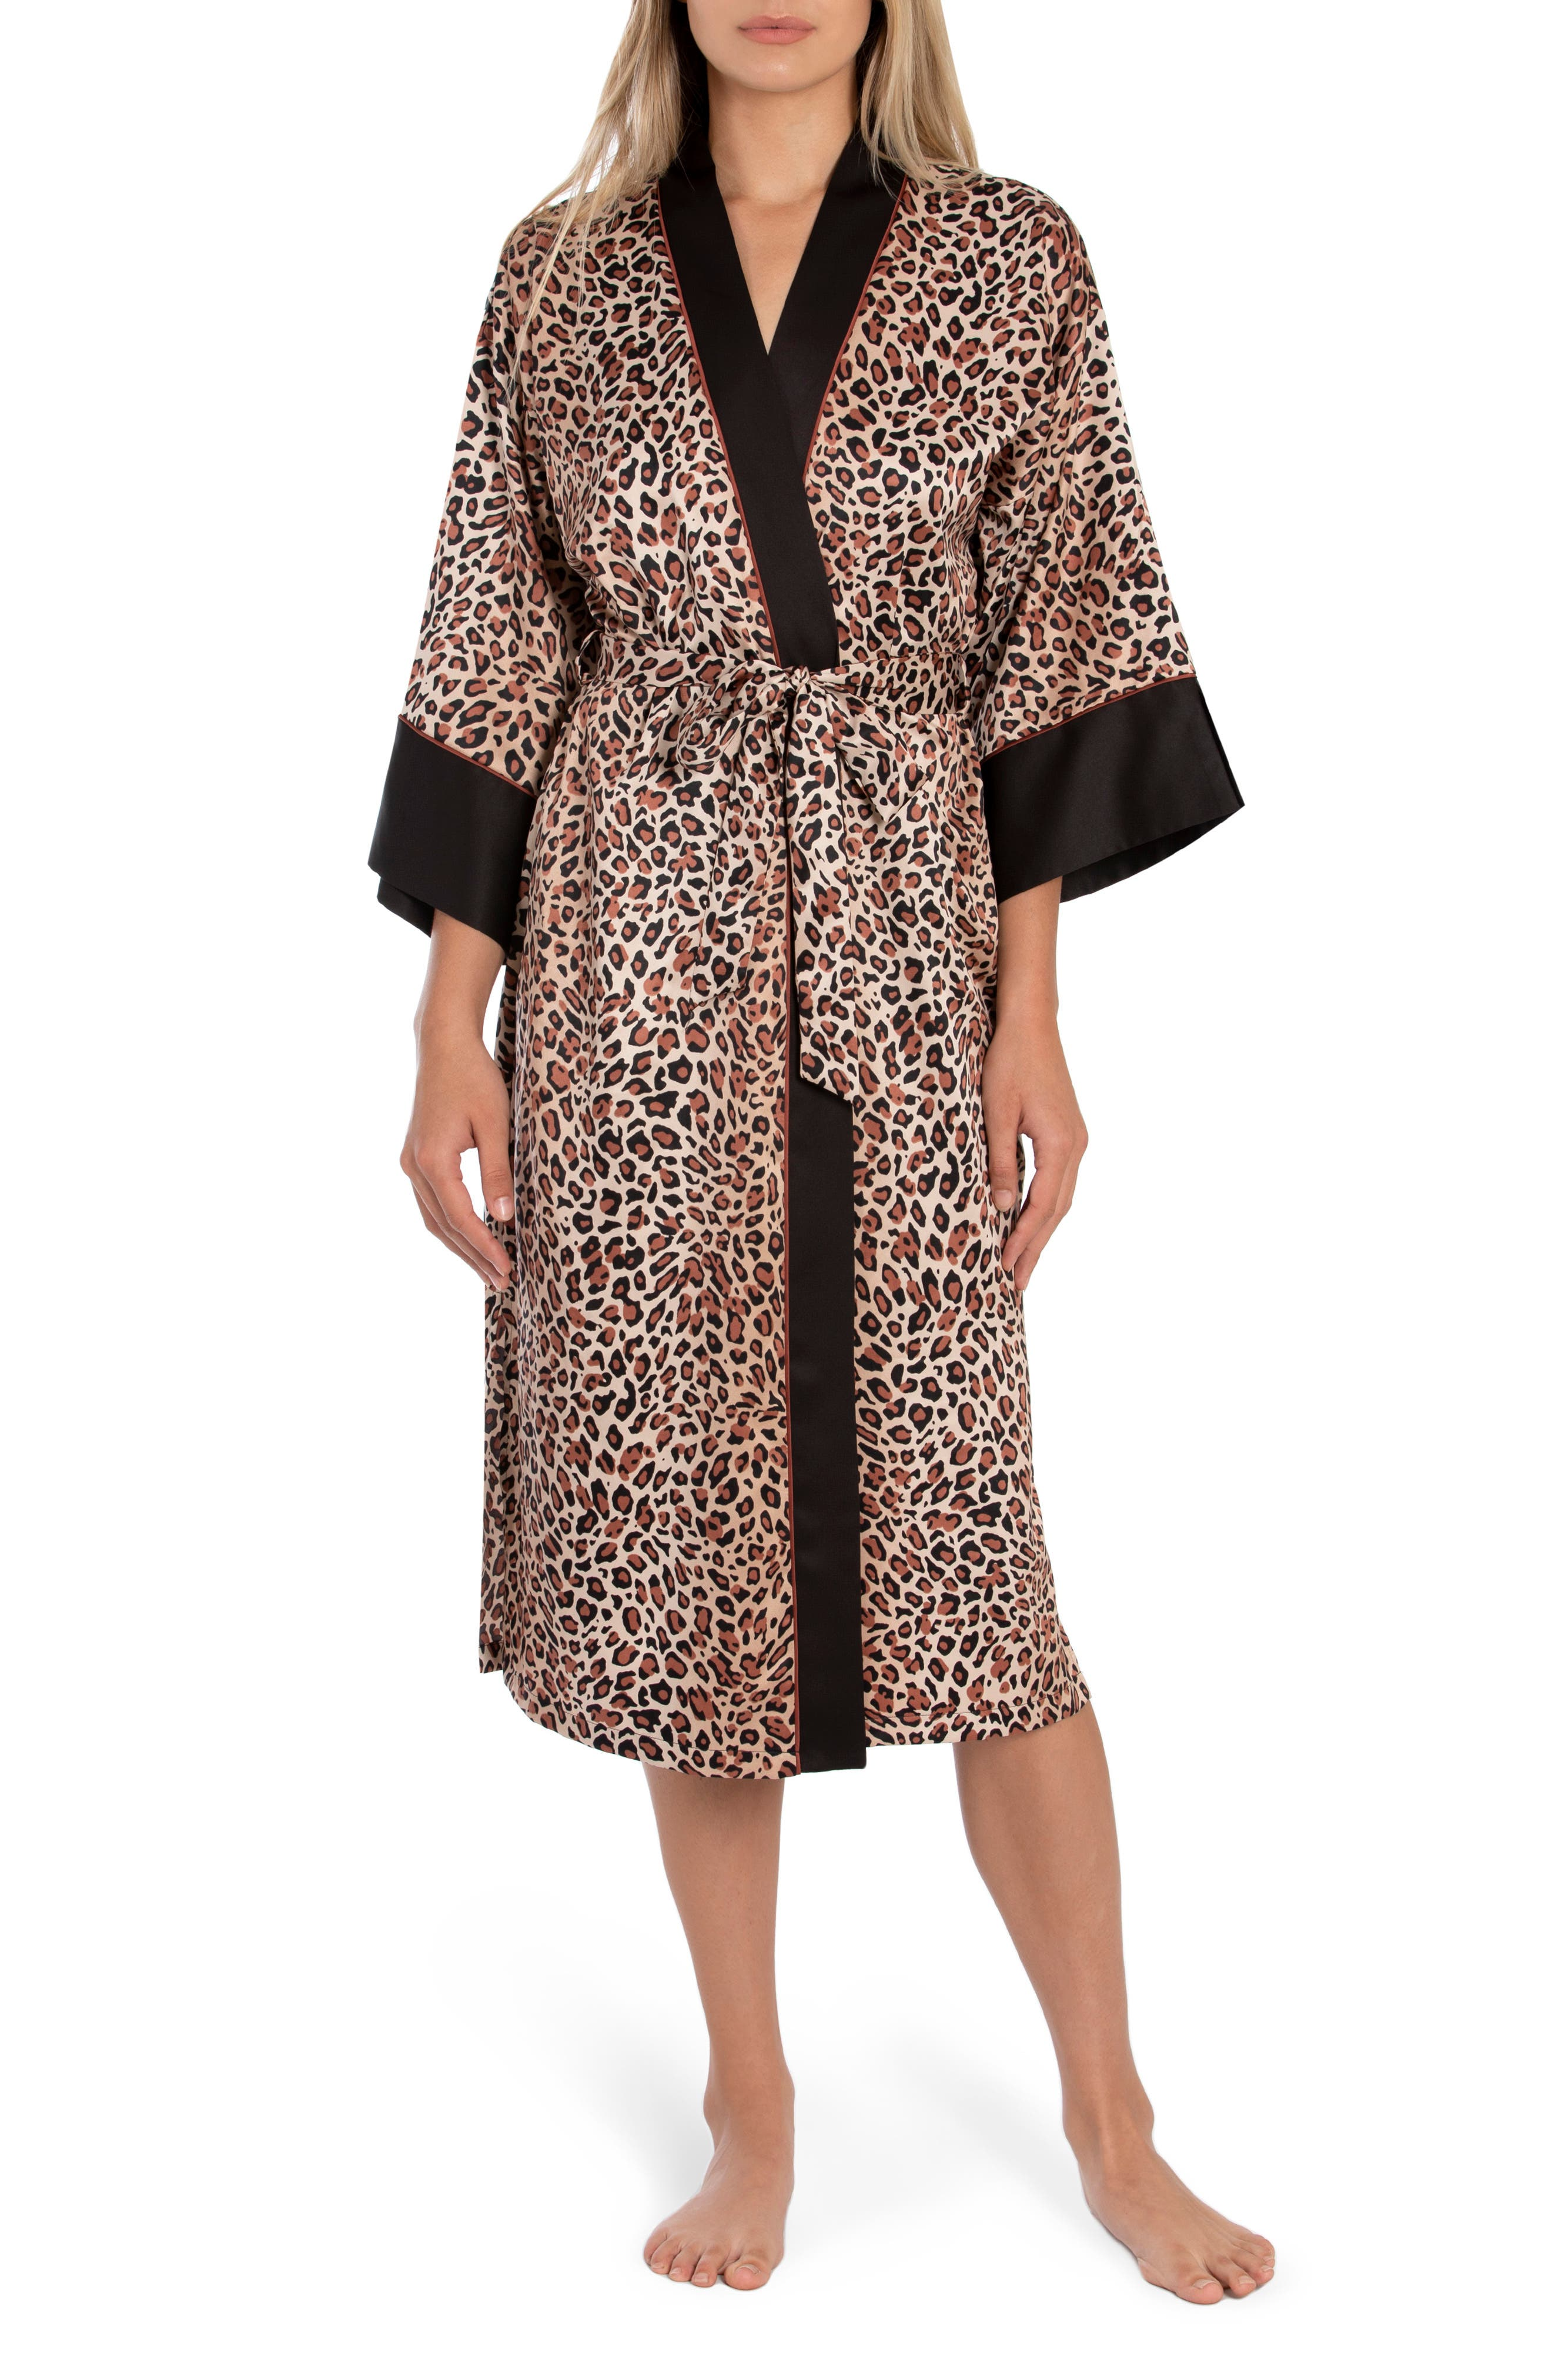 In Bloom by Jonquil Baby It's You Leopard Print Satin Robe (Nordstrom Exclusive)   Nordstrom